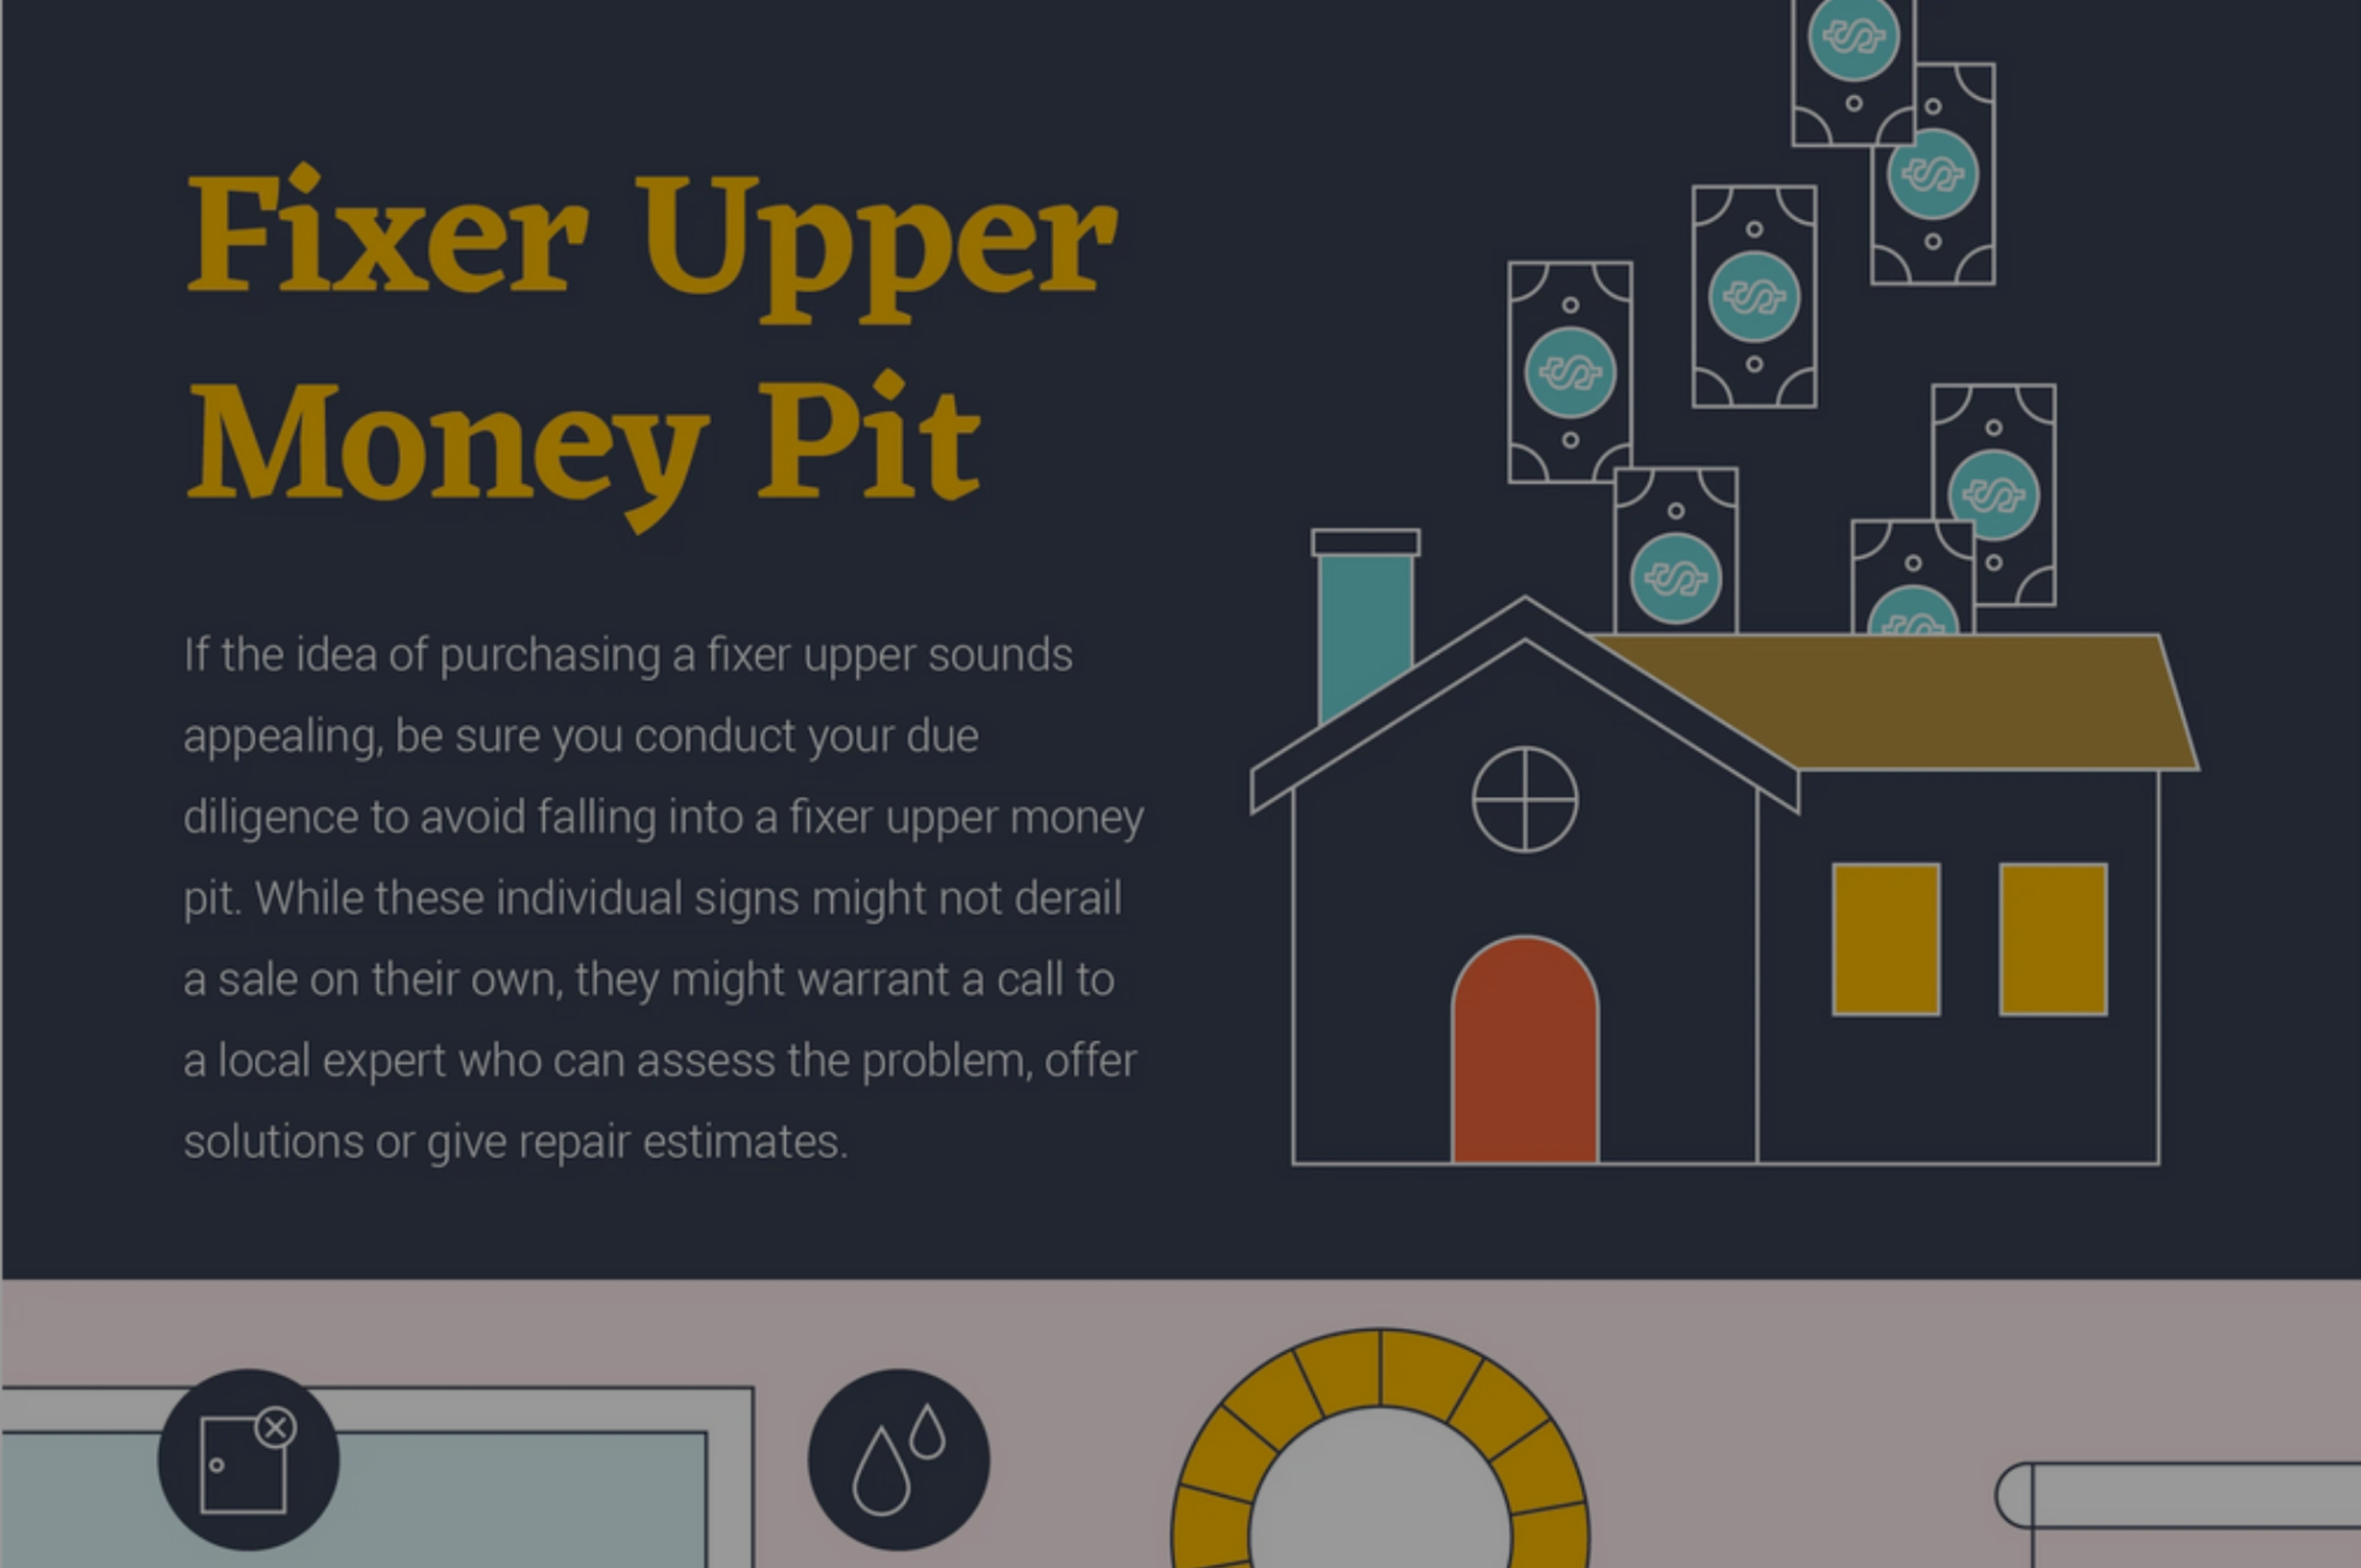 Avoid Falling Into a Fixer Upper Money Pit | Infograhpic